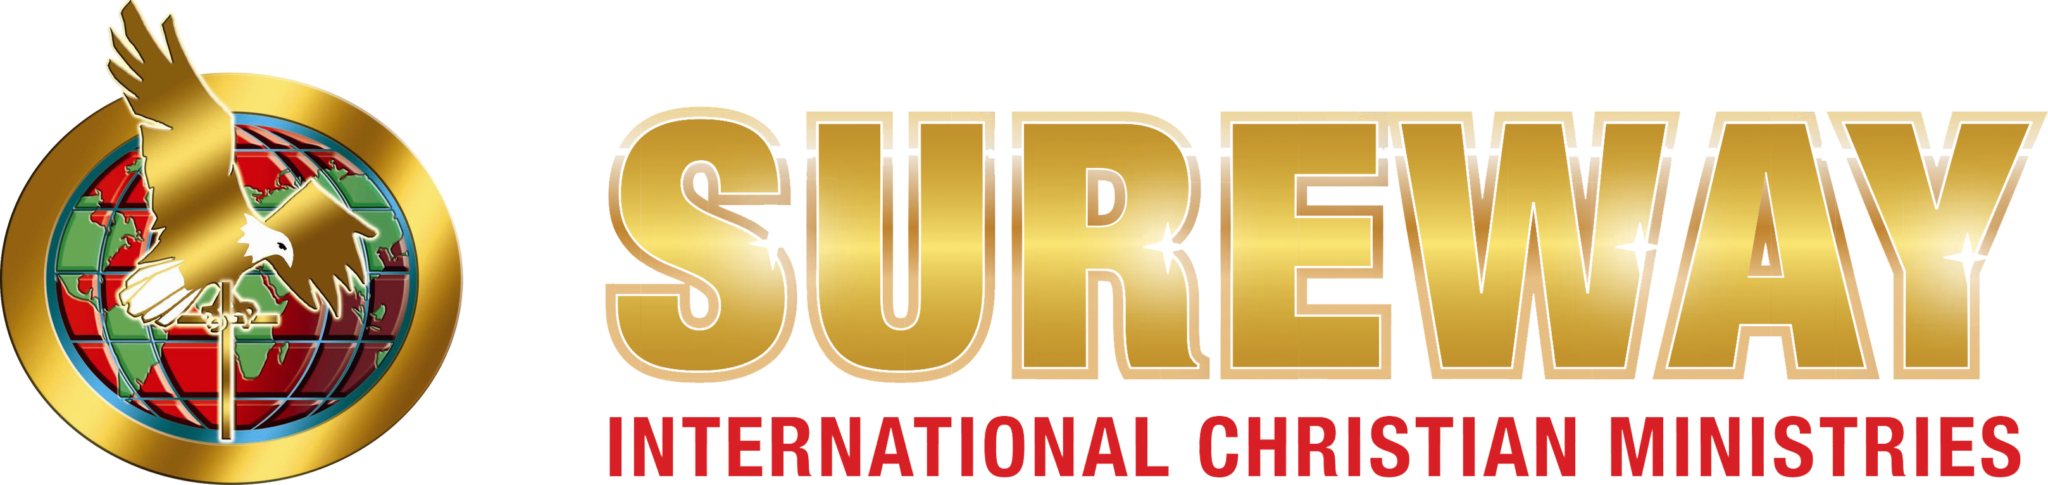 Sureway Logo and Text